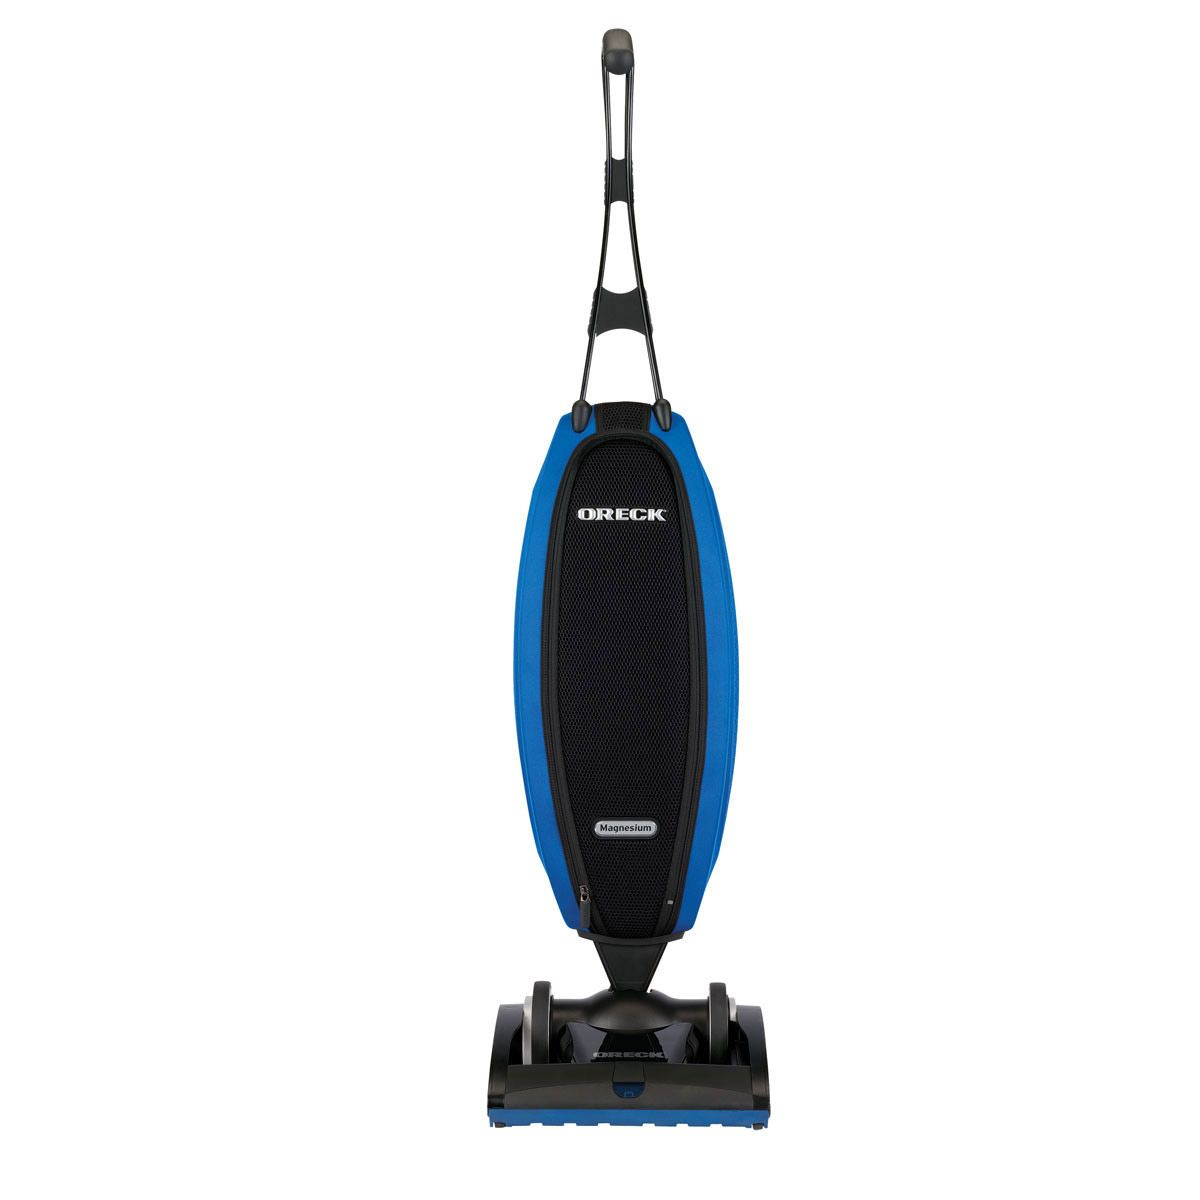 Oreck Has Introduced One Of The Lightest Full Powered Upright Vacuum Cleaner In America With Its Extremely Strong Durable Magnesi Oreck Vacuums Oreck Vacuum